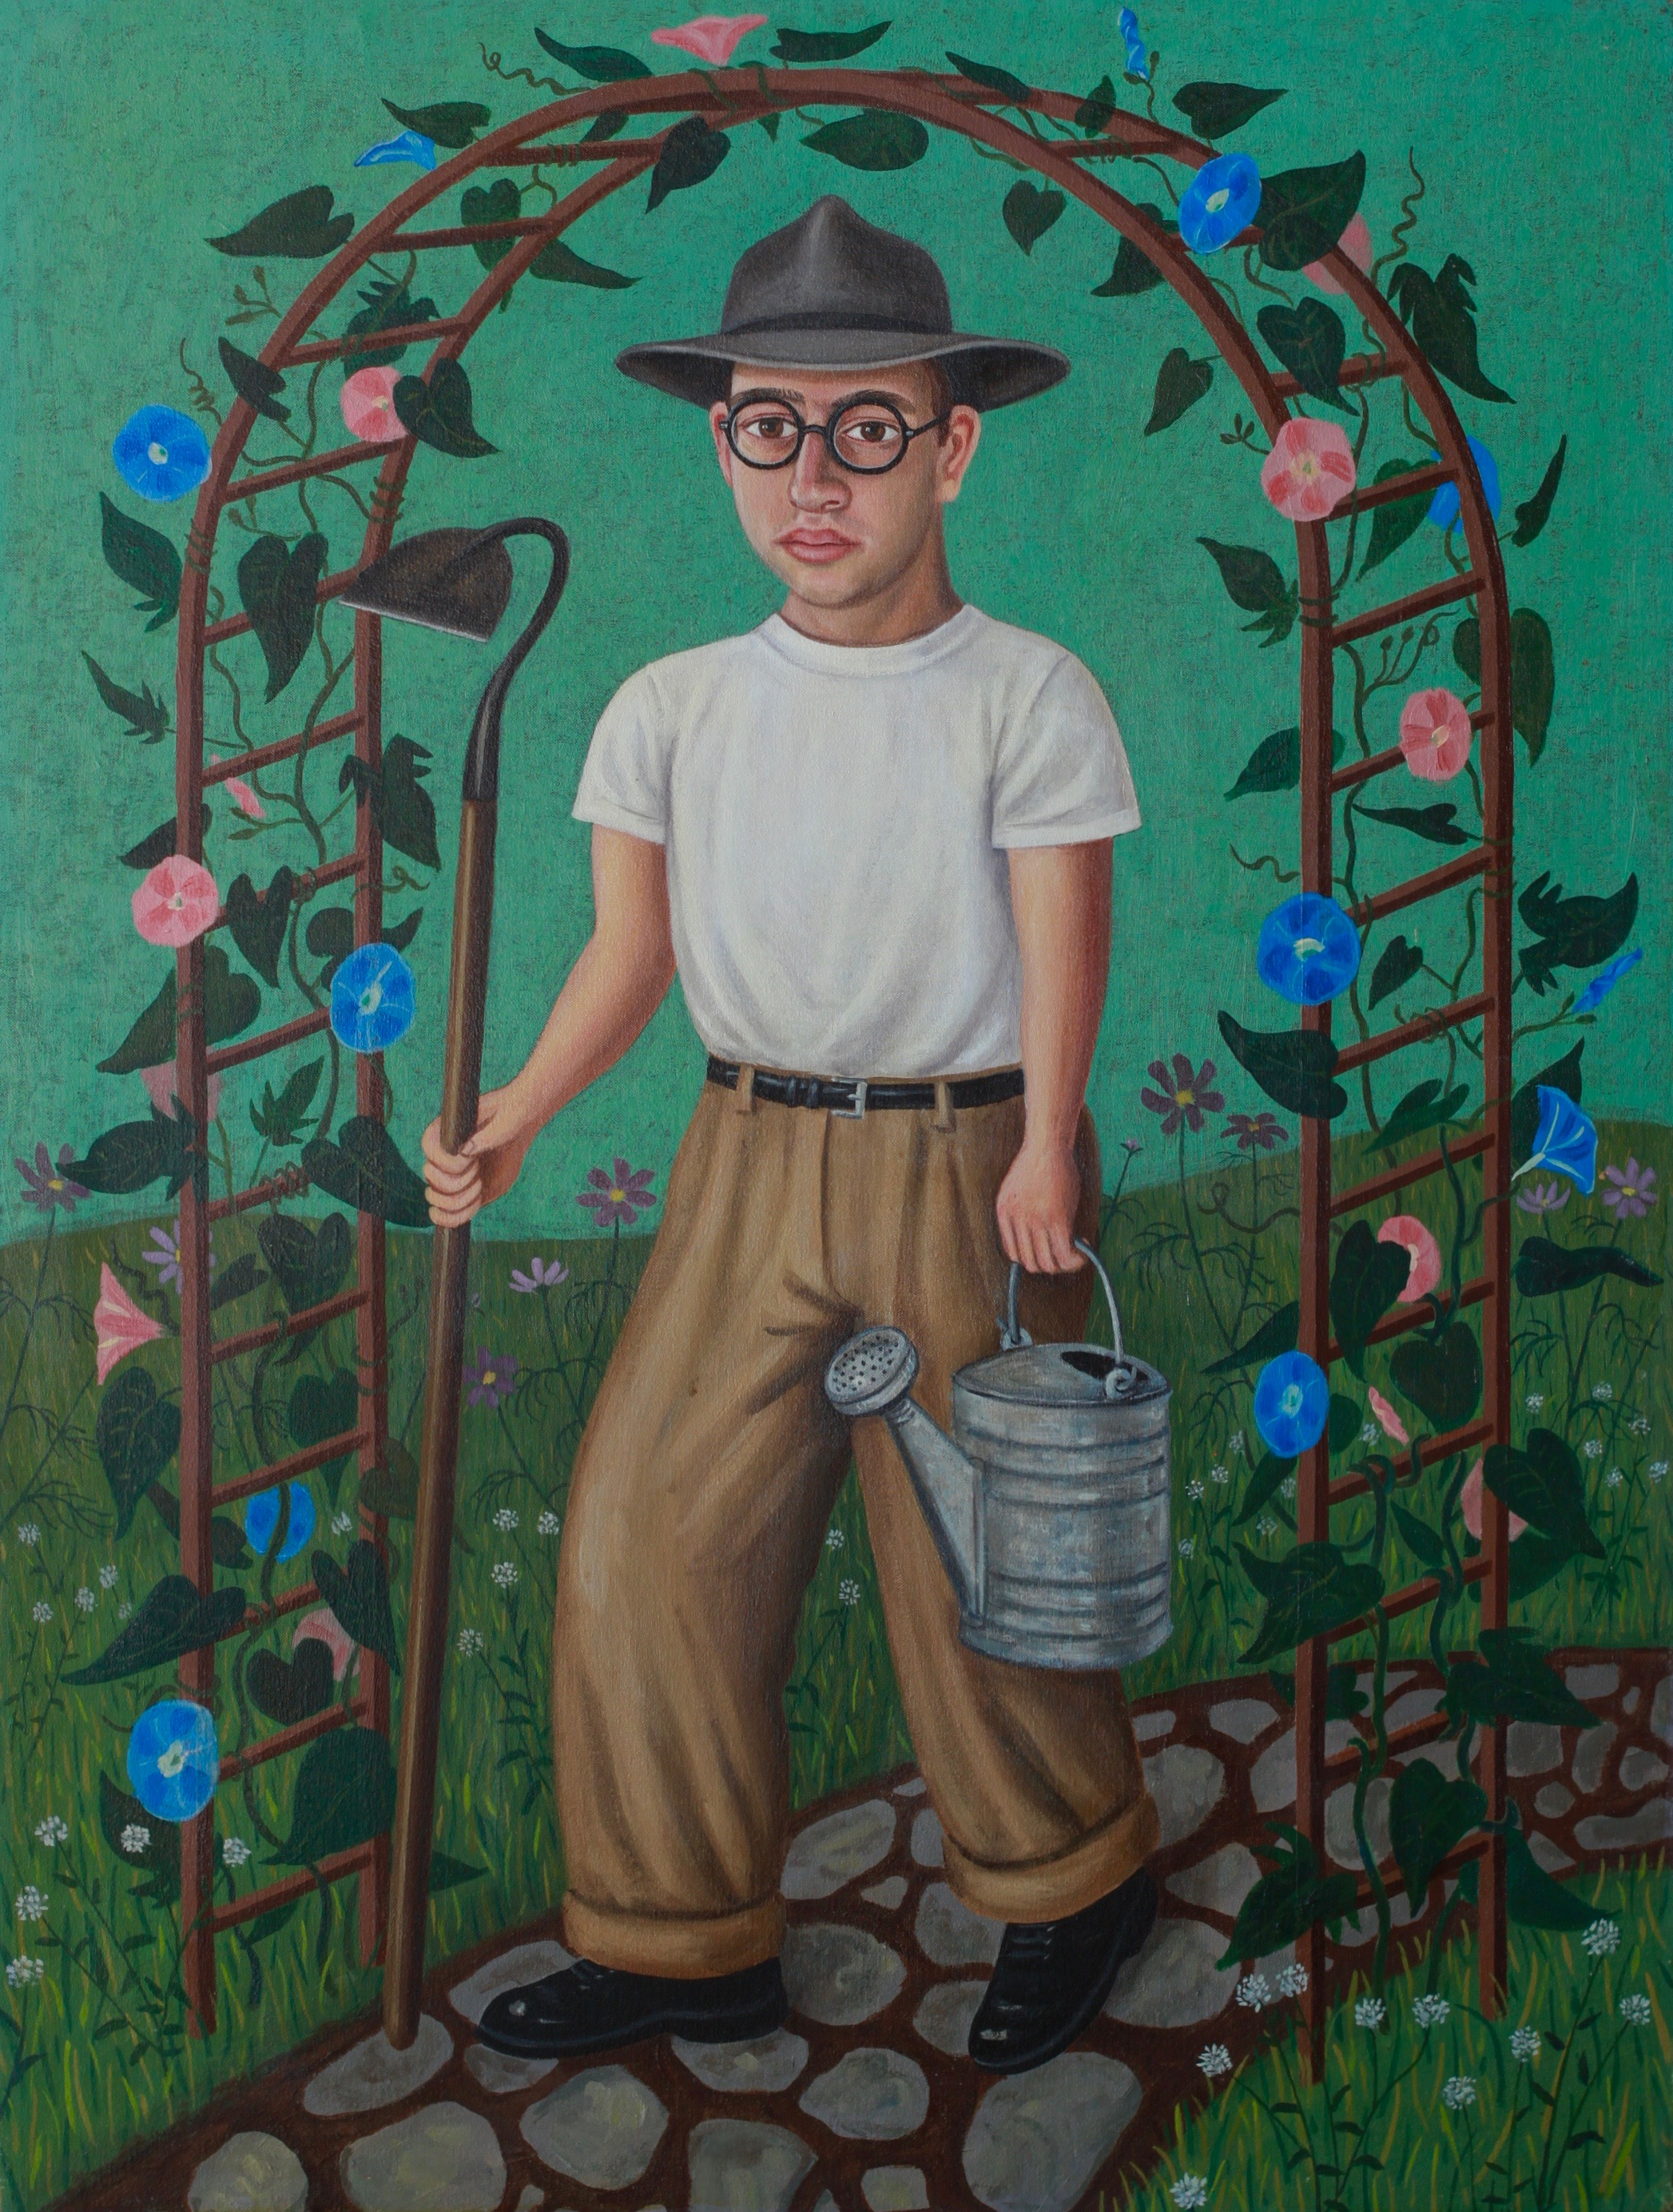 Self-Portrait with Watering Can and Hoe